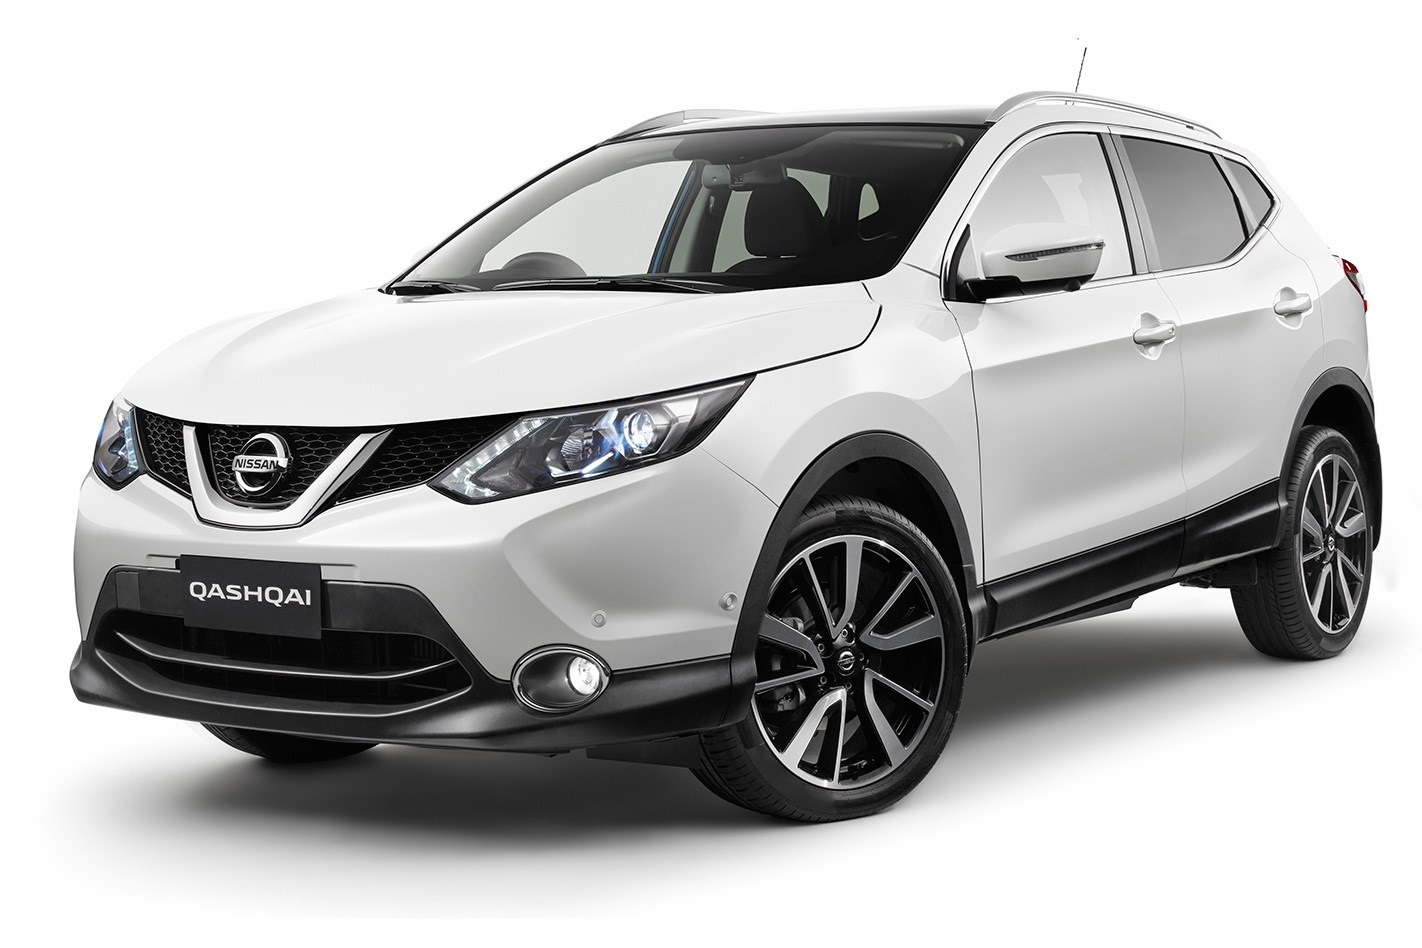 2017 nissan qashqai restyl. Black Bedroom Furniture Sets. Home Design Ideas